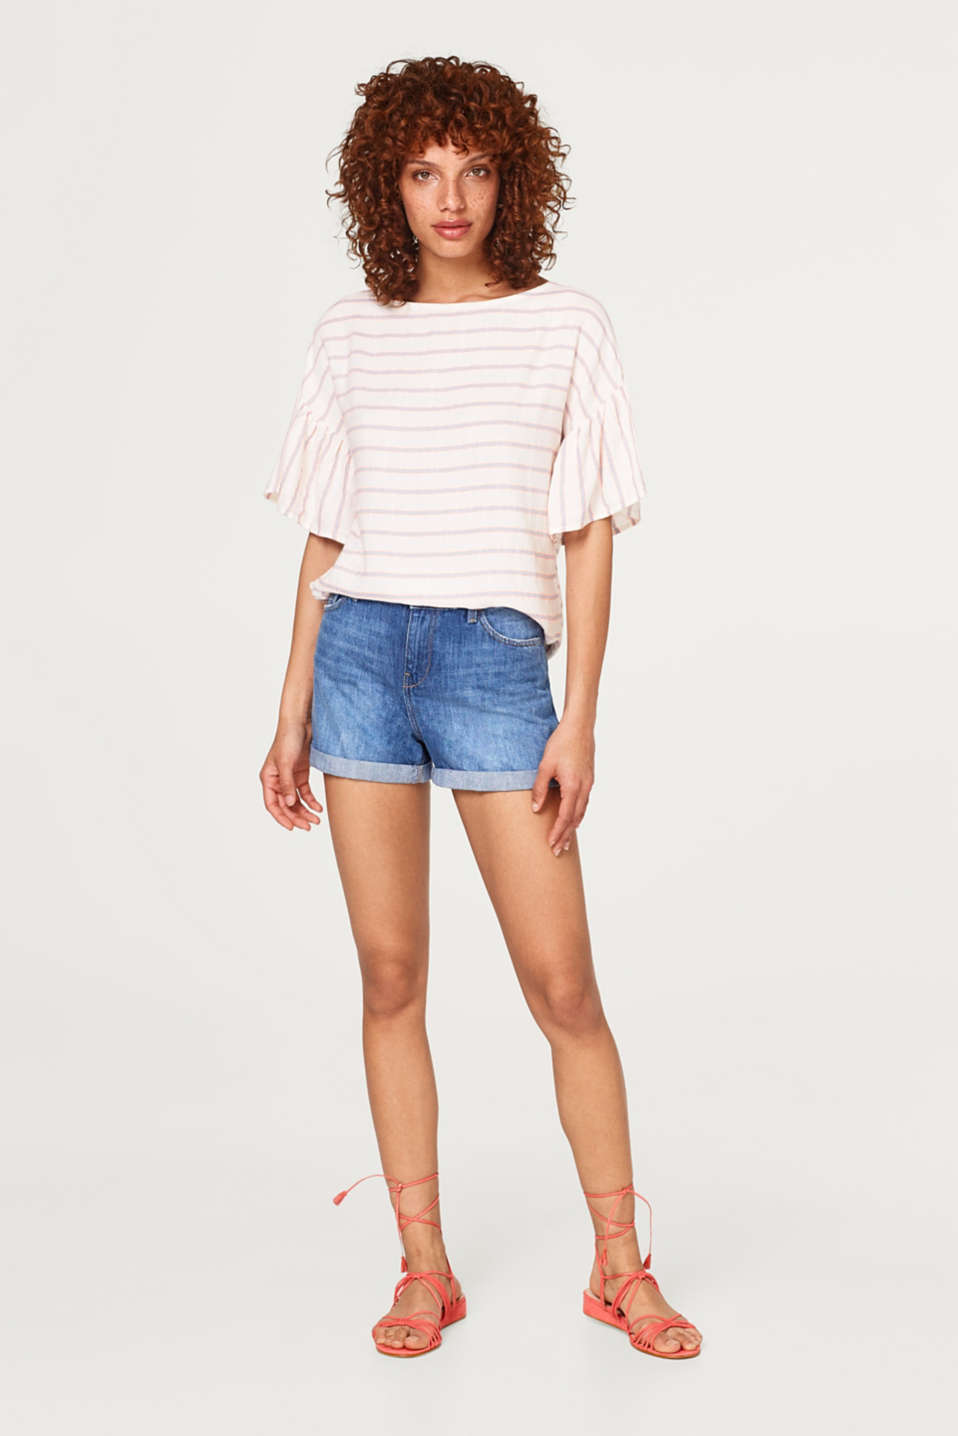 Lightweight woven blouse with stripes and cap sleeves